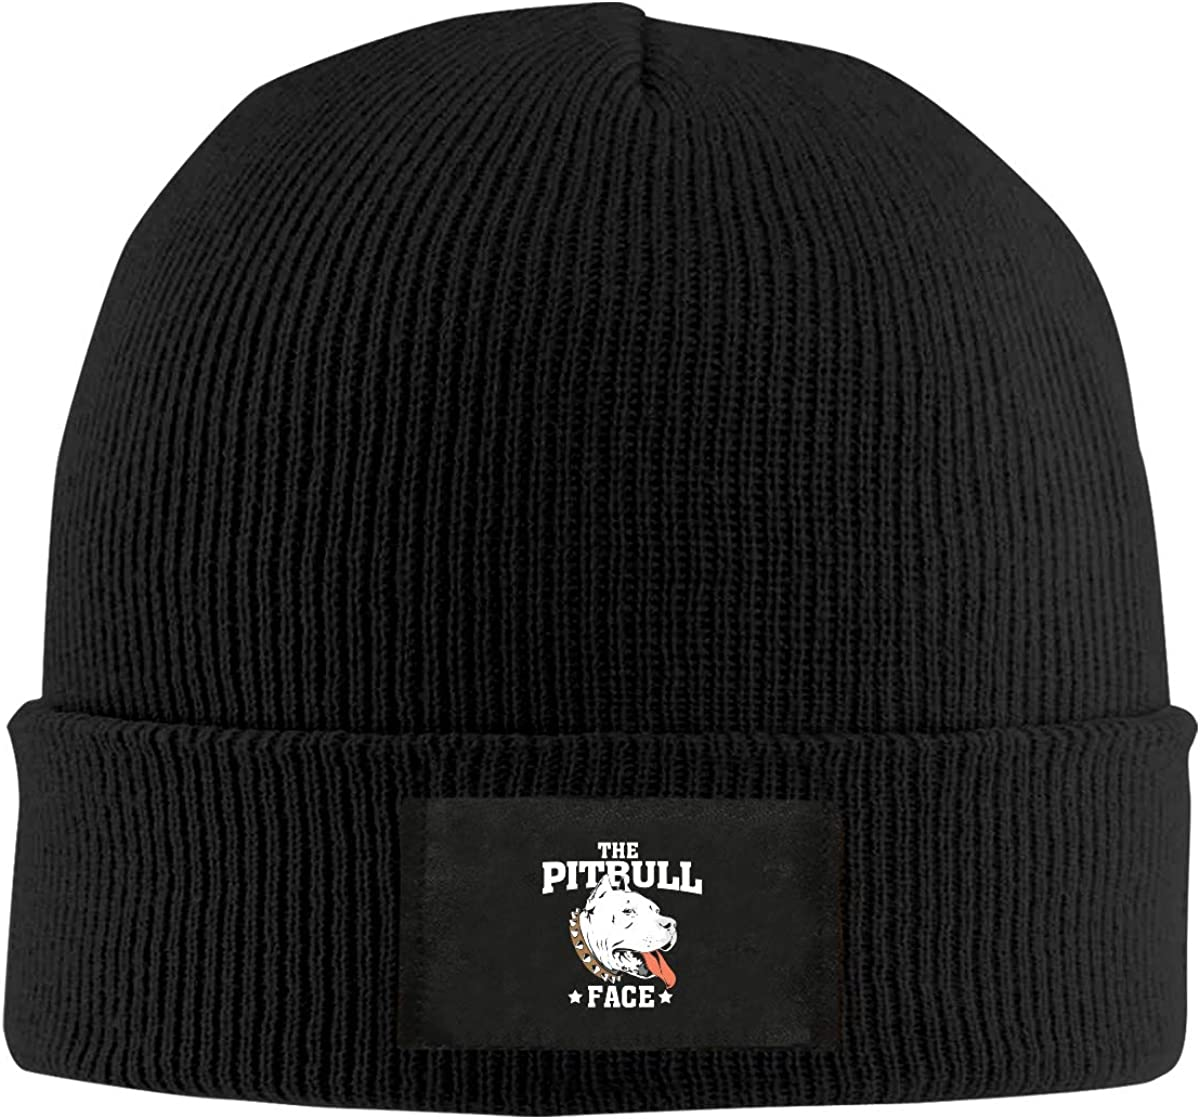 LRHUI Pitbull Face Winter Knitted Hat Warm Wool Skull Beanie Cap